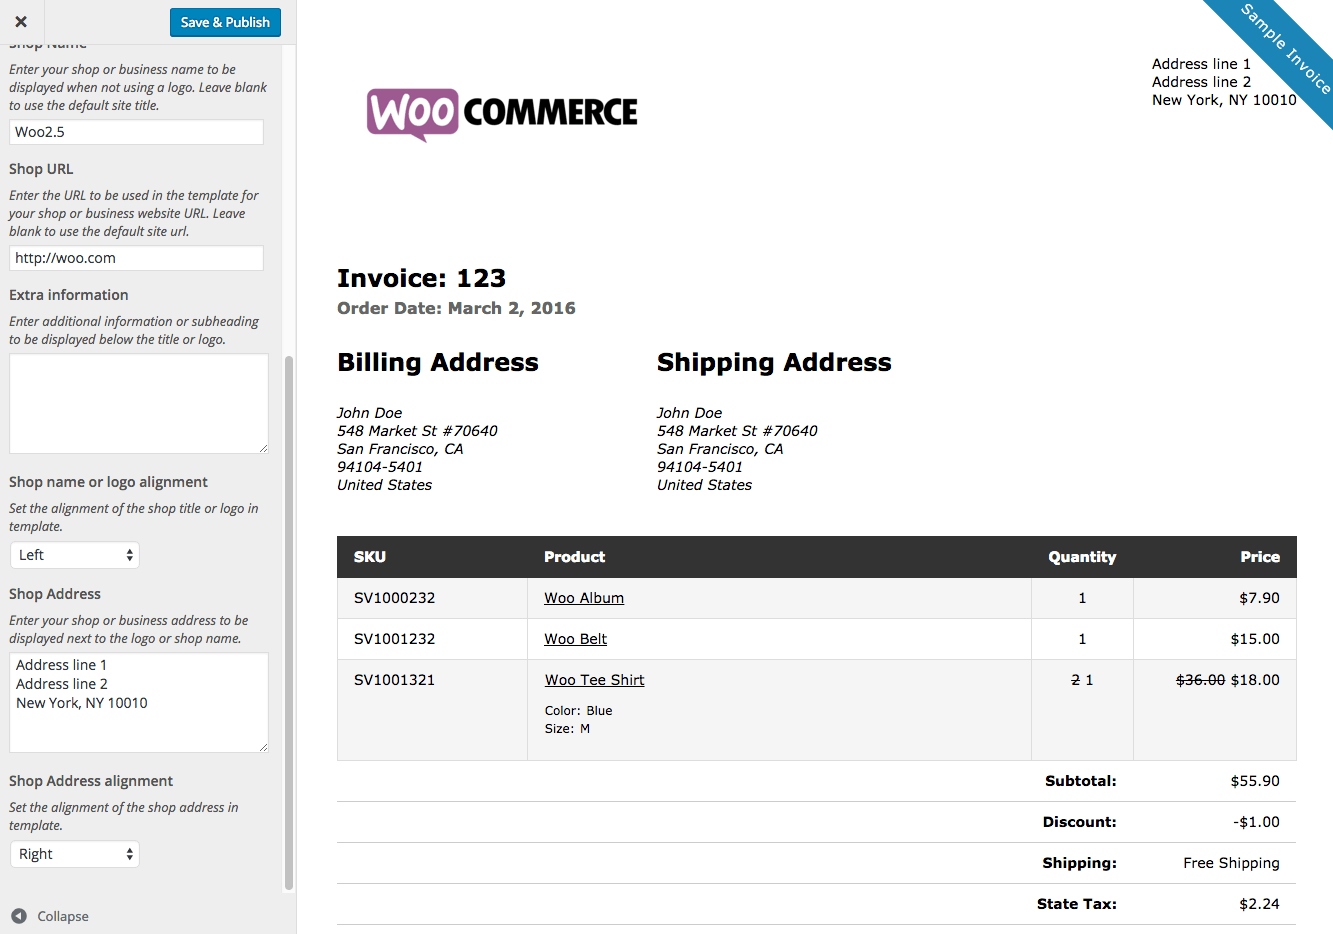 Soulfulpowerus  Inspiring Woocommerce Print Invoices Amp Packing Lists  Woocommerce Docs With Extraordinary Woocommerce Print Invoices  Packing Lists Customizer With Cute Invoice Books Online Also Invoicing Softwares In Addition What Invoice And Services Rendered Invoice Template As Well As Programs For Invoices Additionally Invoice Systems For Small Business From Docswoocommercecom With Soulfulpowerus  Extraordinary Woocommerce Print Invoices Amp Packing Lists  Woocommerce Docs With Cute Woocommerce Print Invoices  Packing Lists Customizer And Inspiring Invoice Books Online Also Invoicing Softwares In Addition What Invoice From Docswoocommercecom